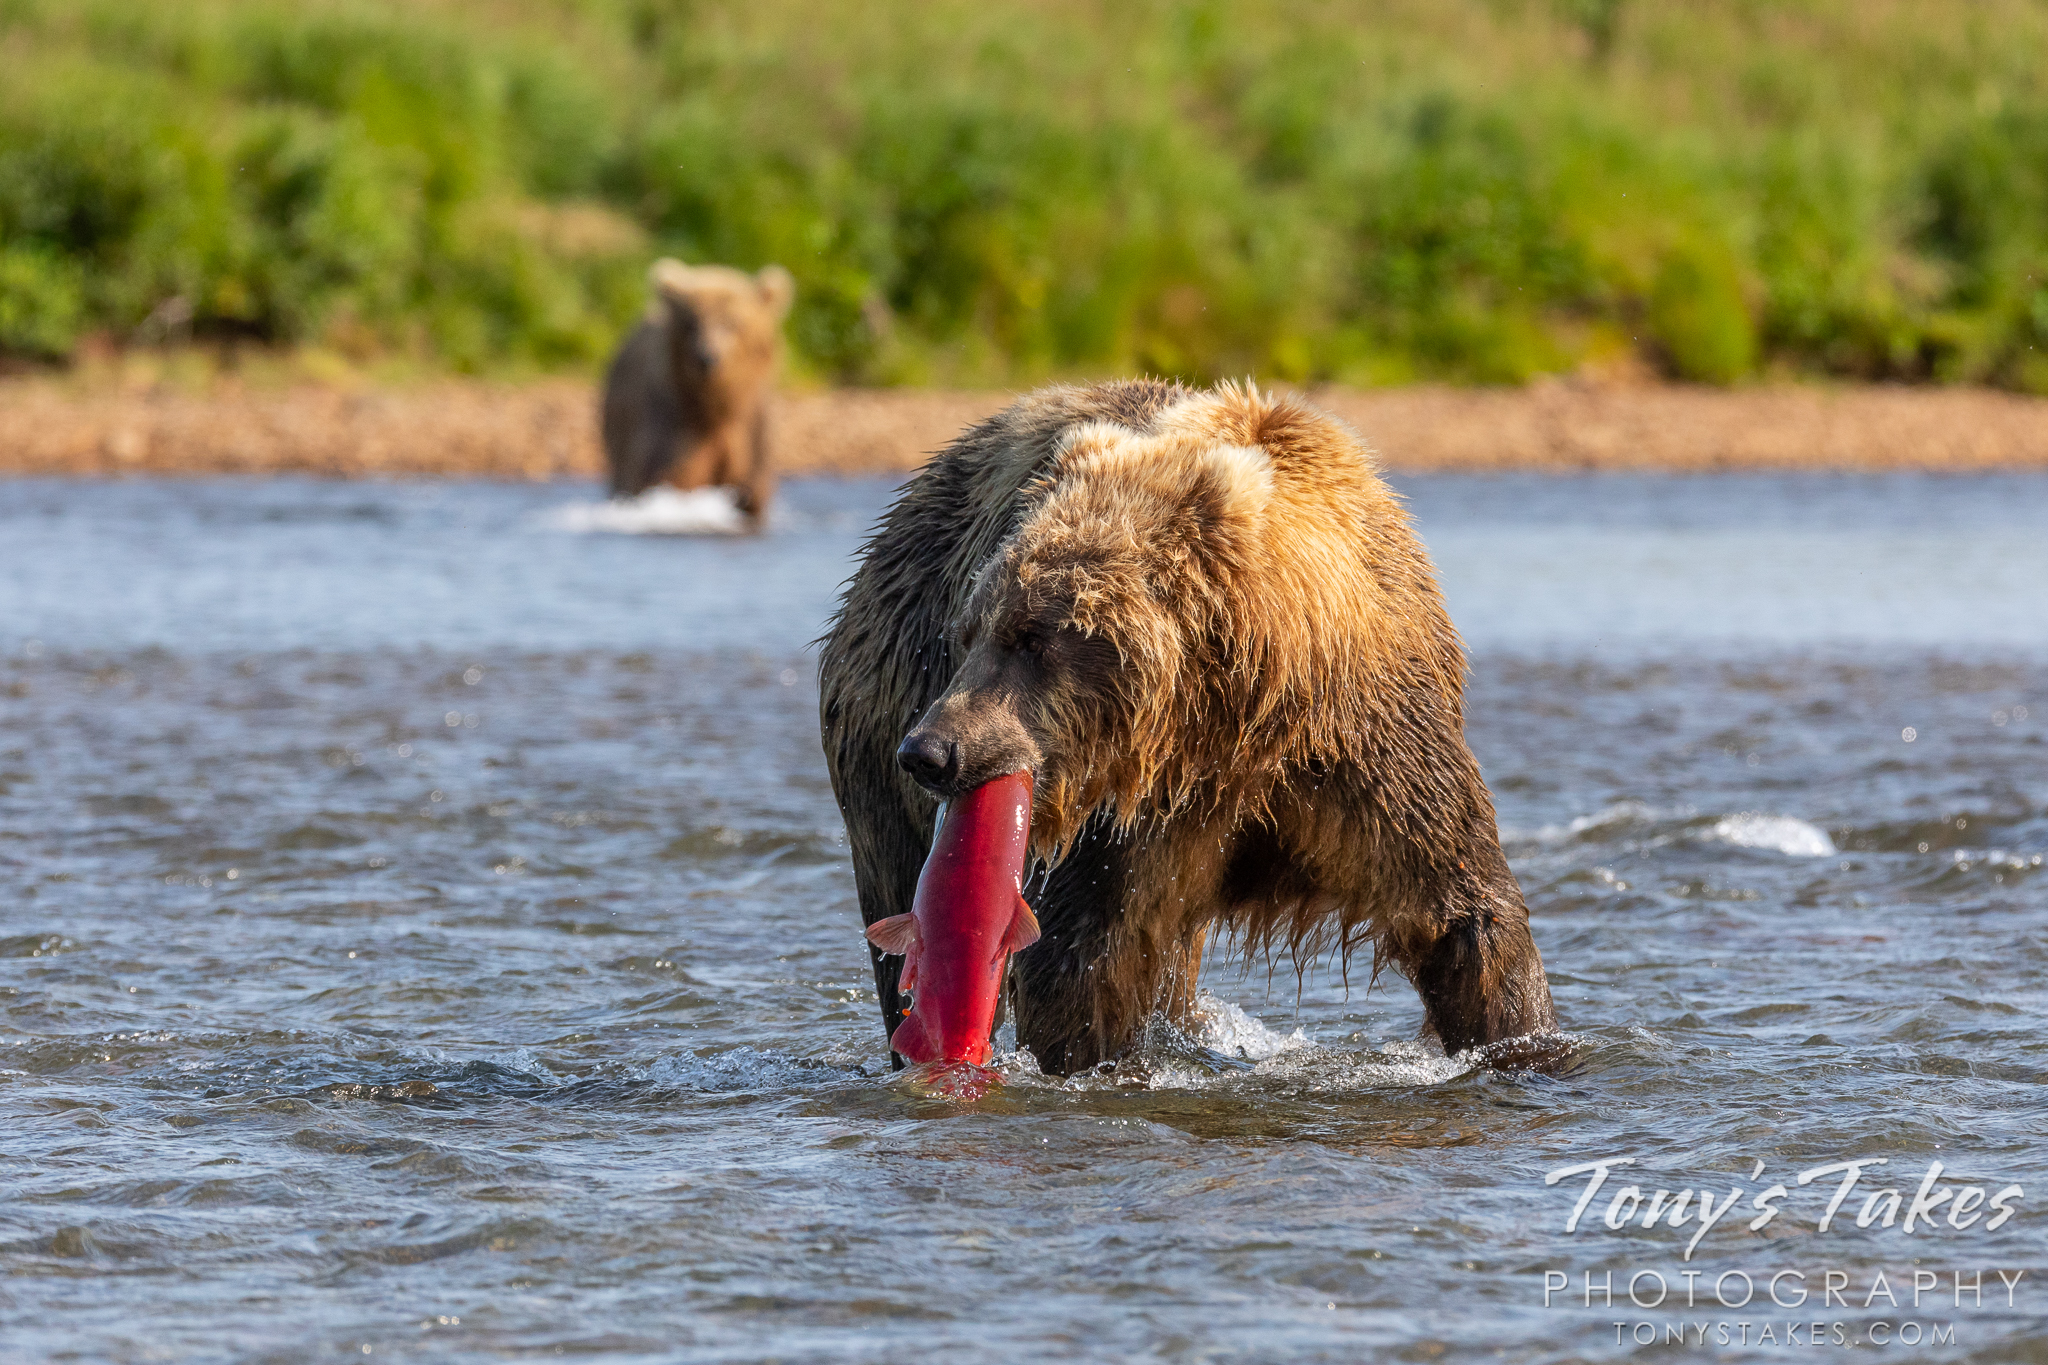 An Alaskan brown bear pulls a salmon from the river in Katmai National Park and Preserve. (© Tony's Takes)